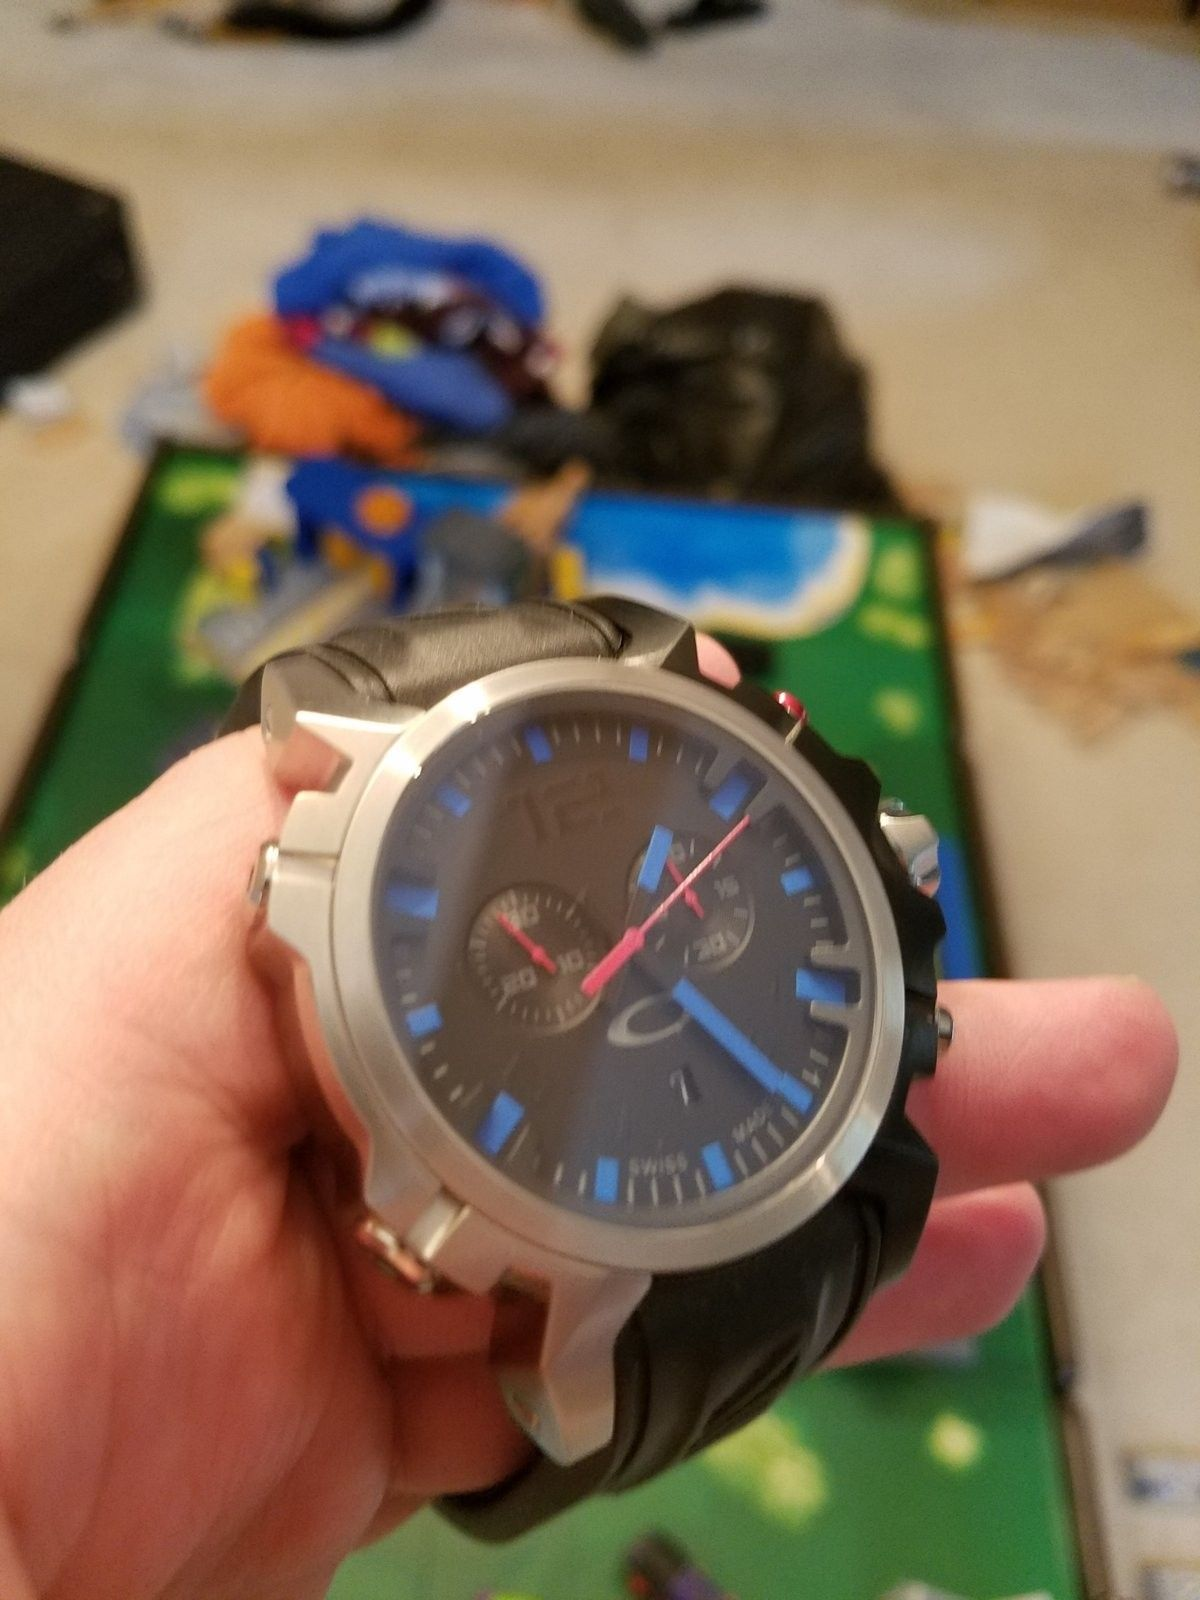 Like New Blue Double Tap with Watch Box $560 - 20160508_132611.jpg